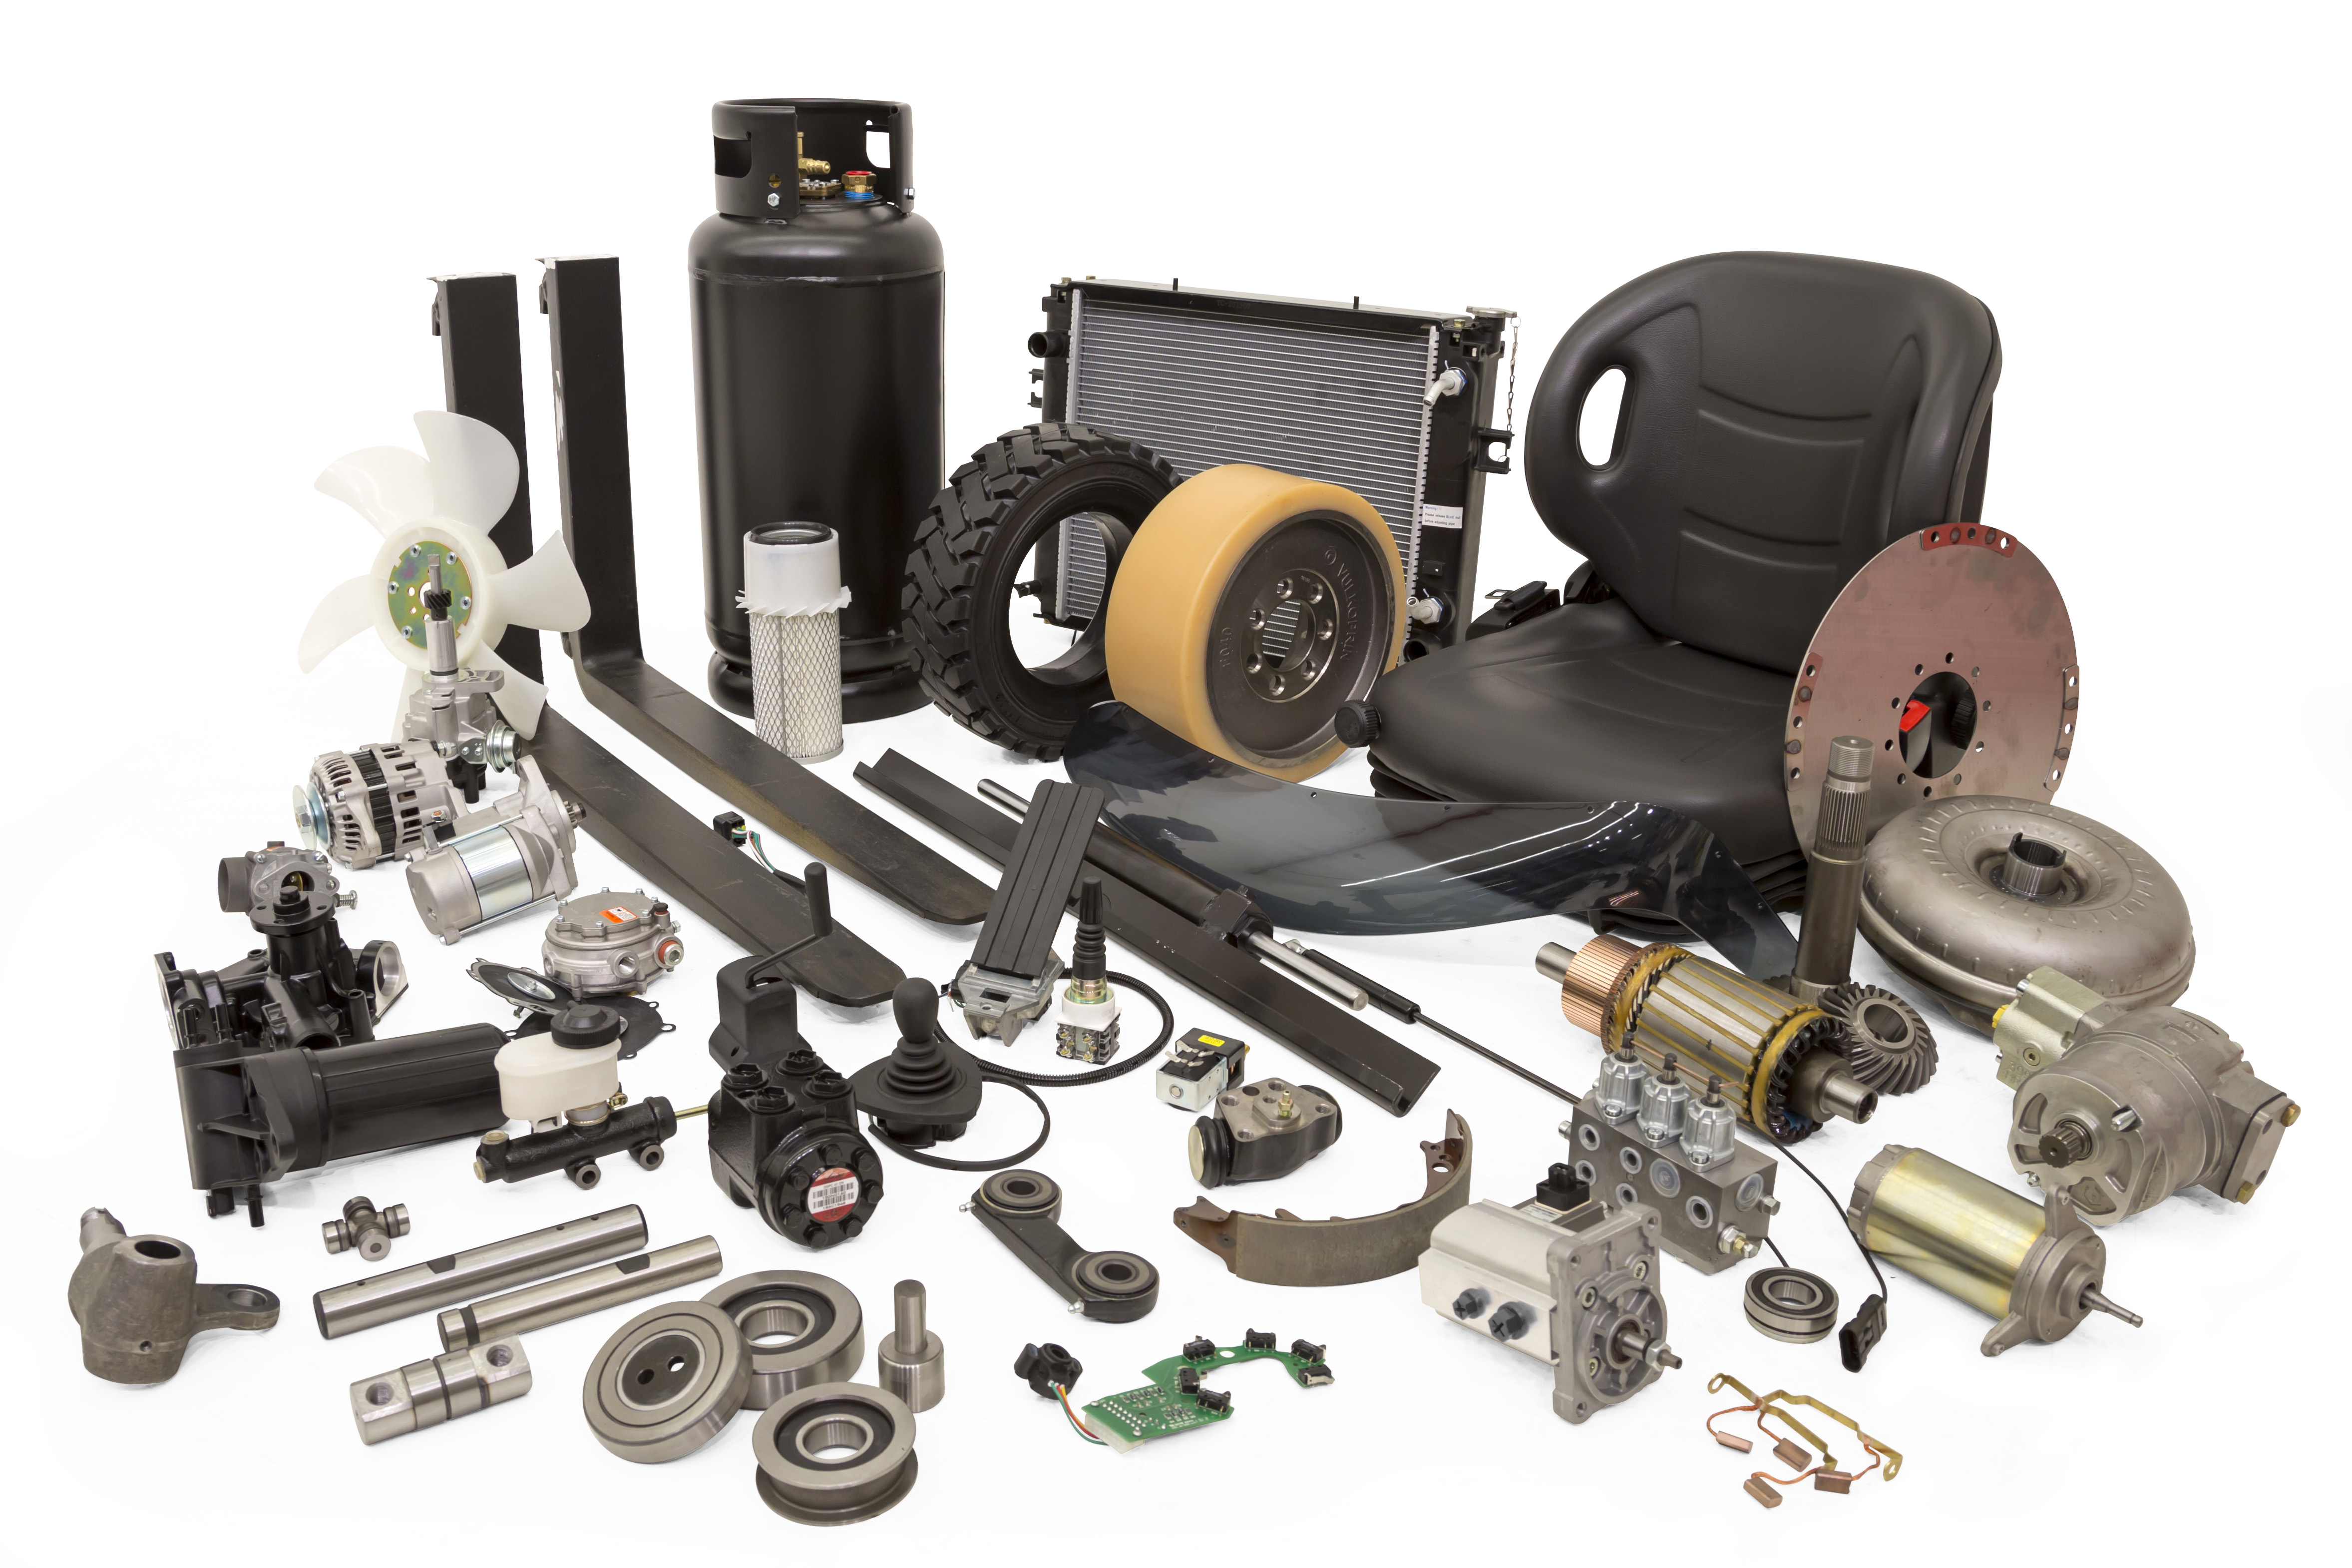 Forklift Body Parts : Airport suppliers tvh parts and accessories for ground